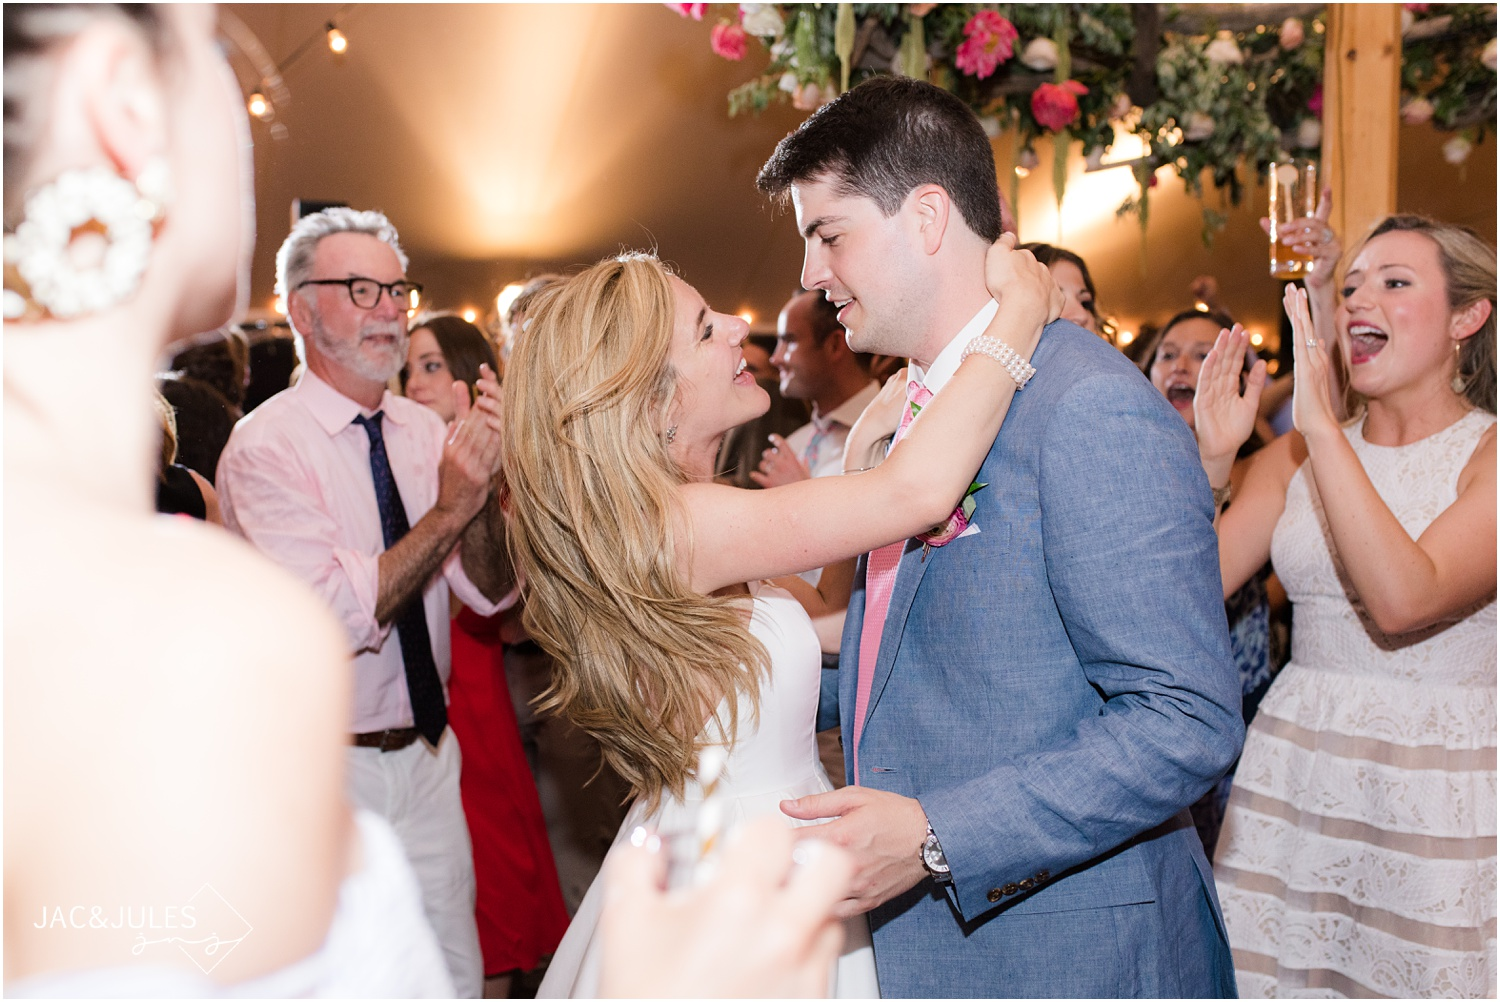 Bride and groom dancing to final song of the night during their tented wedding reception at Mantoloking Yacht Club.